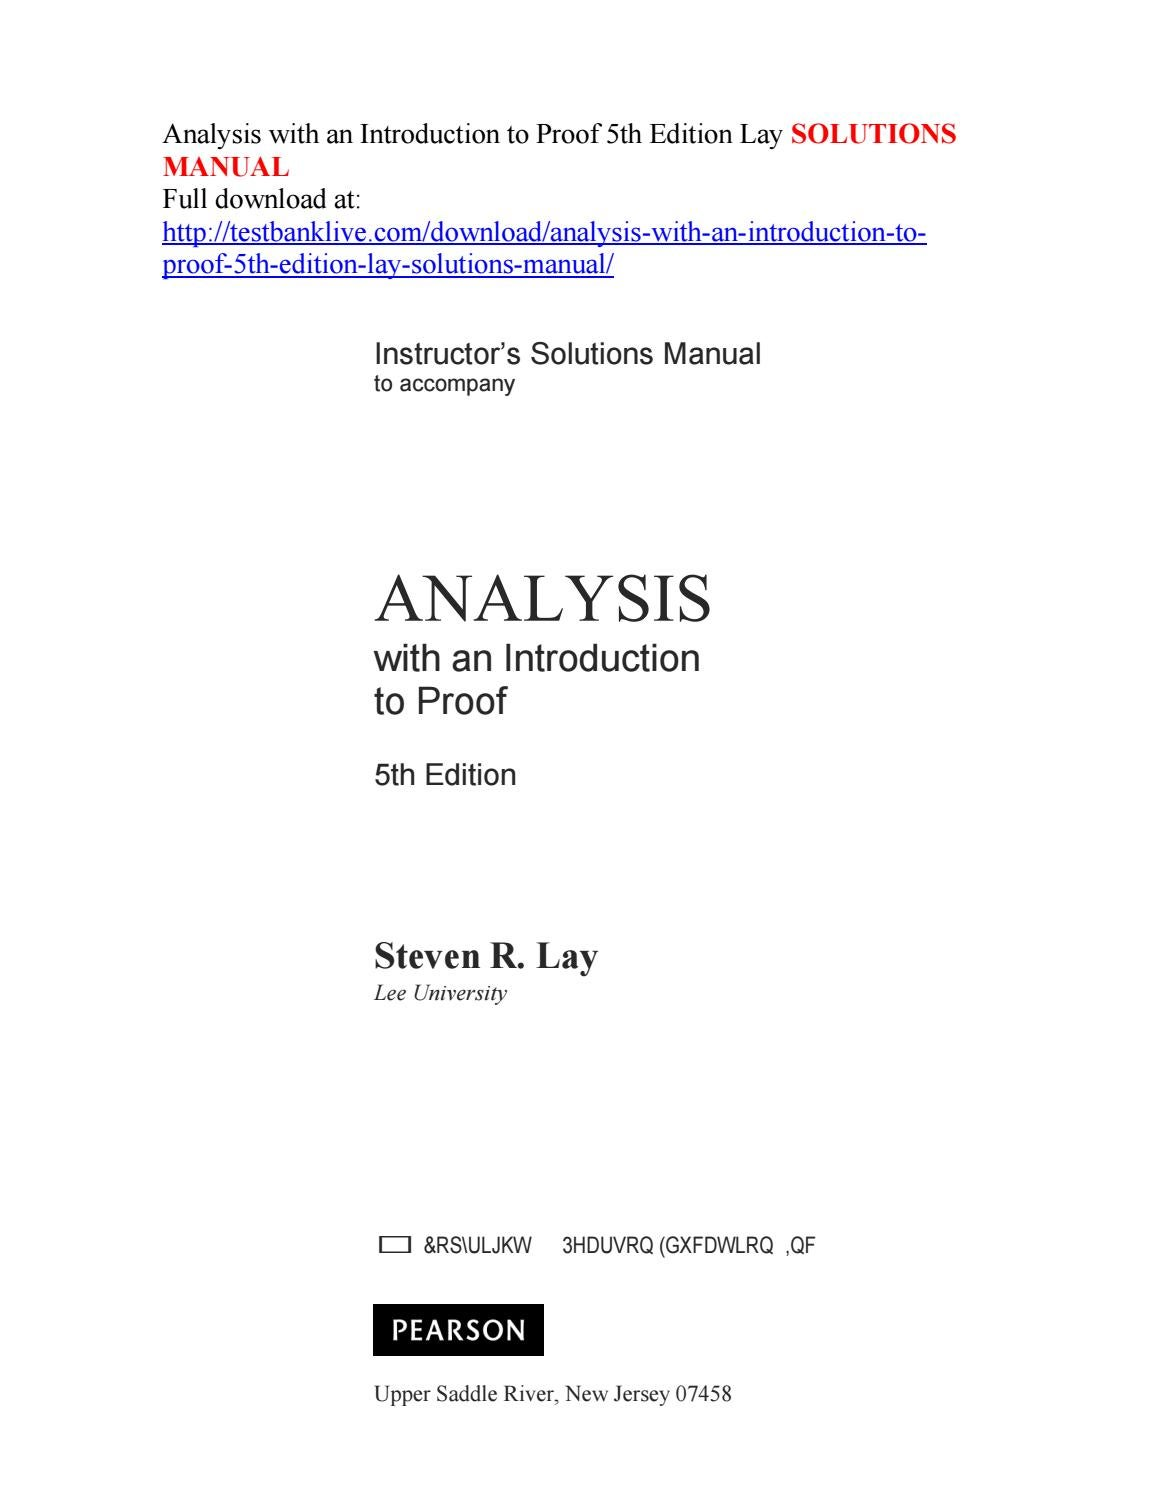 Analysis with an introduction to proof 5th edition lay solutions manual by  juns - issuu